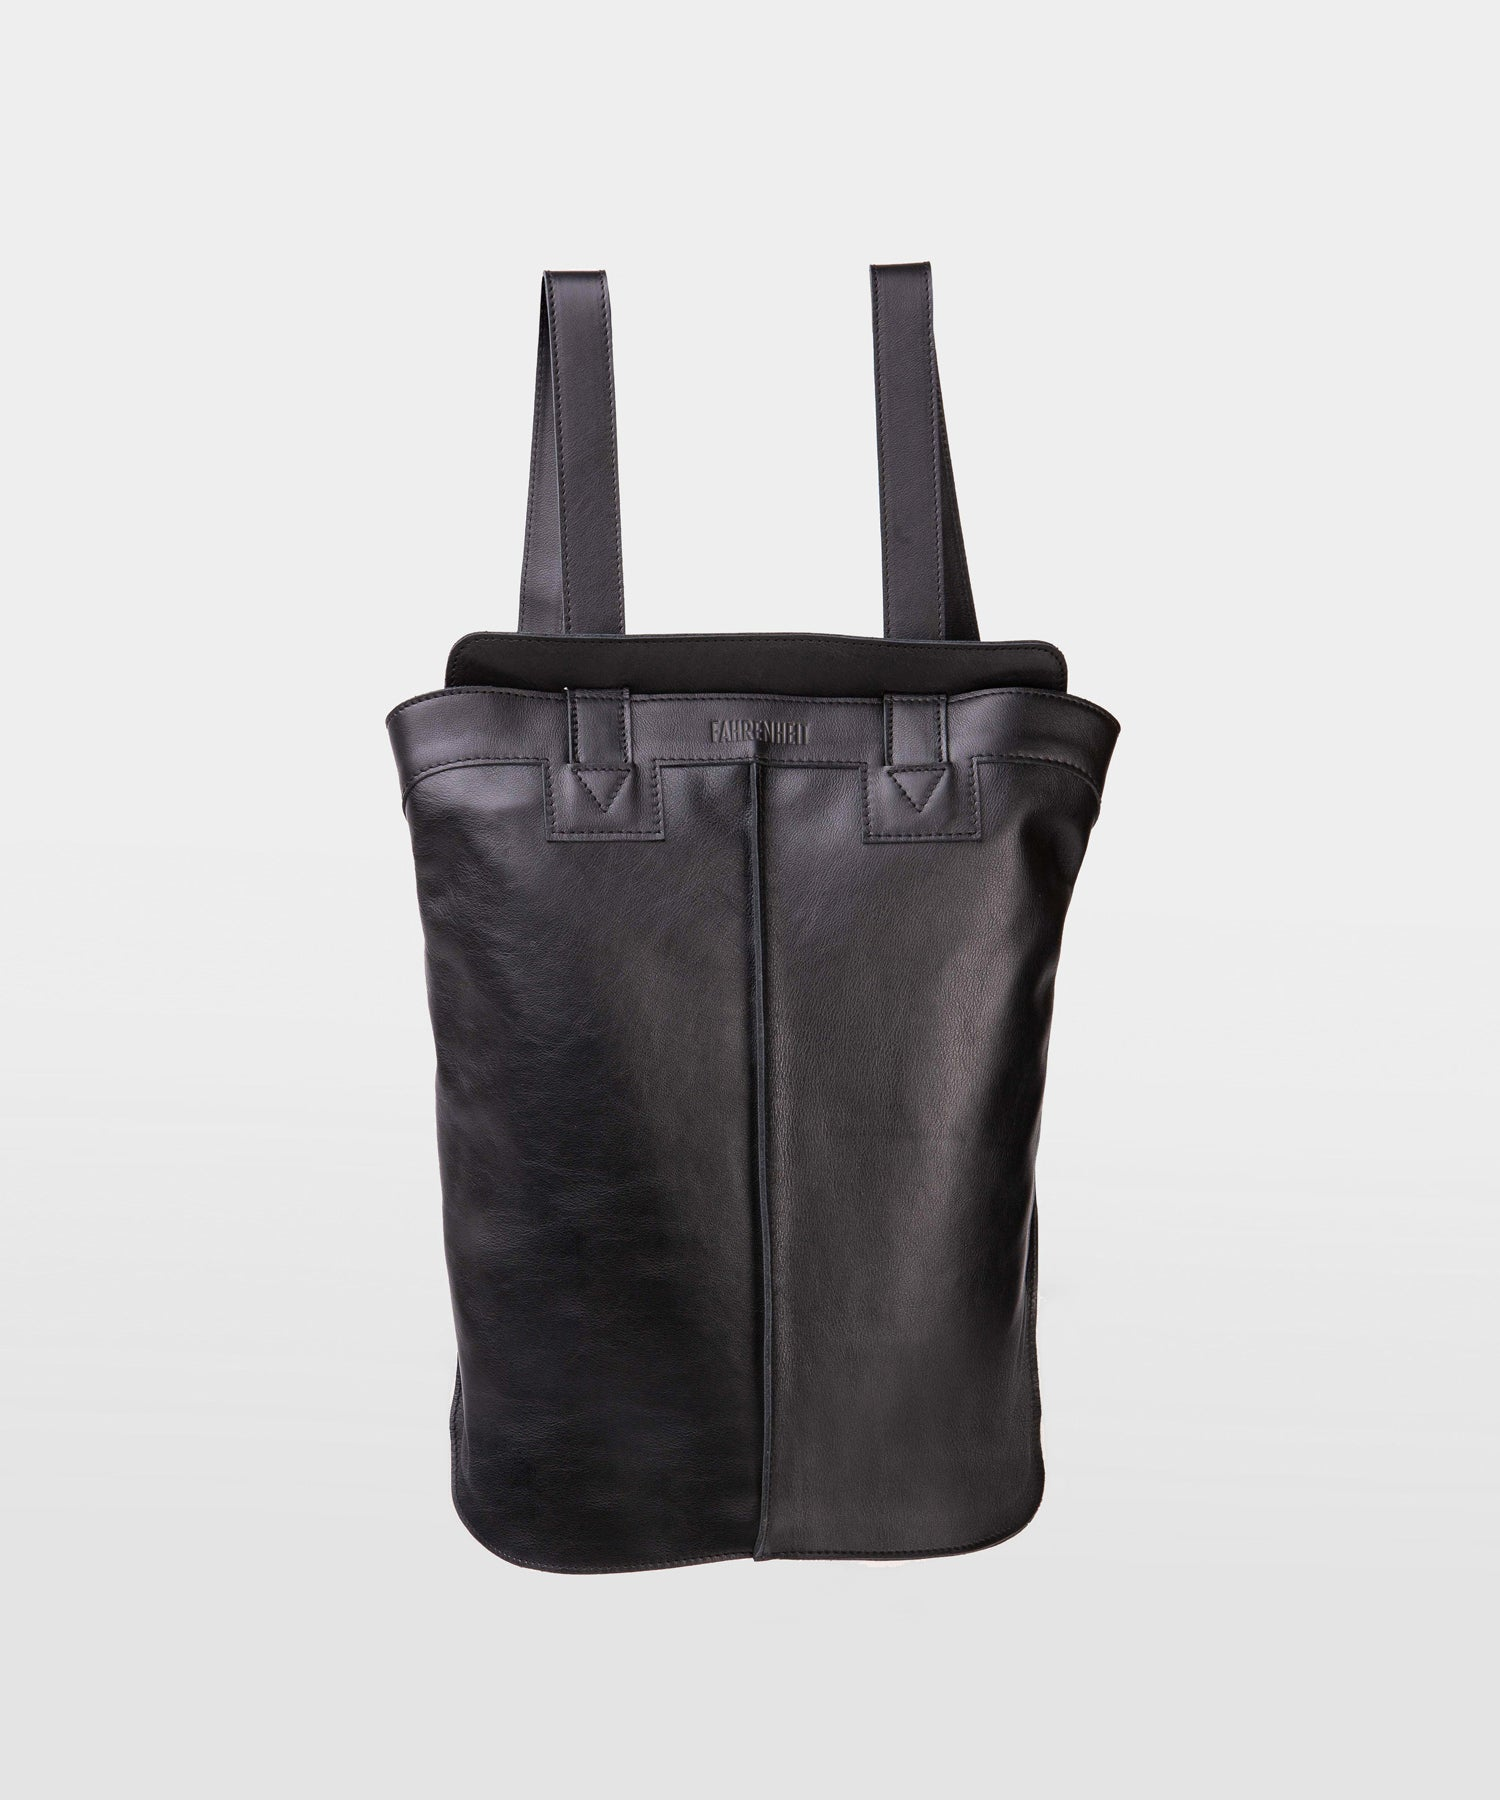 Mini-Backpack-Basic-Fahrenheit-Leather-Carbon-Handmade-Nuovum-Barcelona-localdesigners